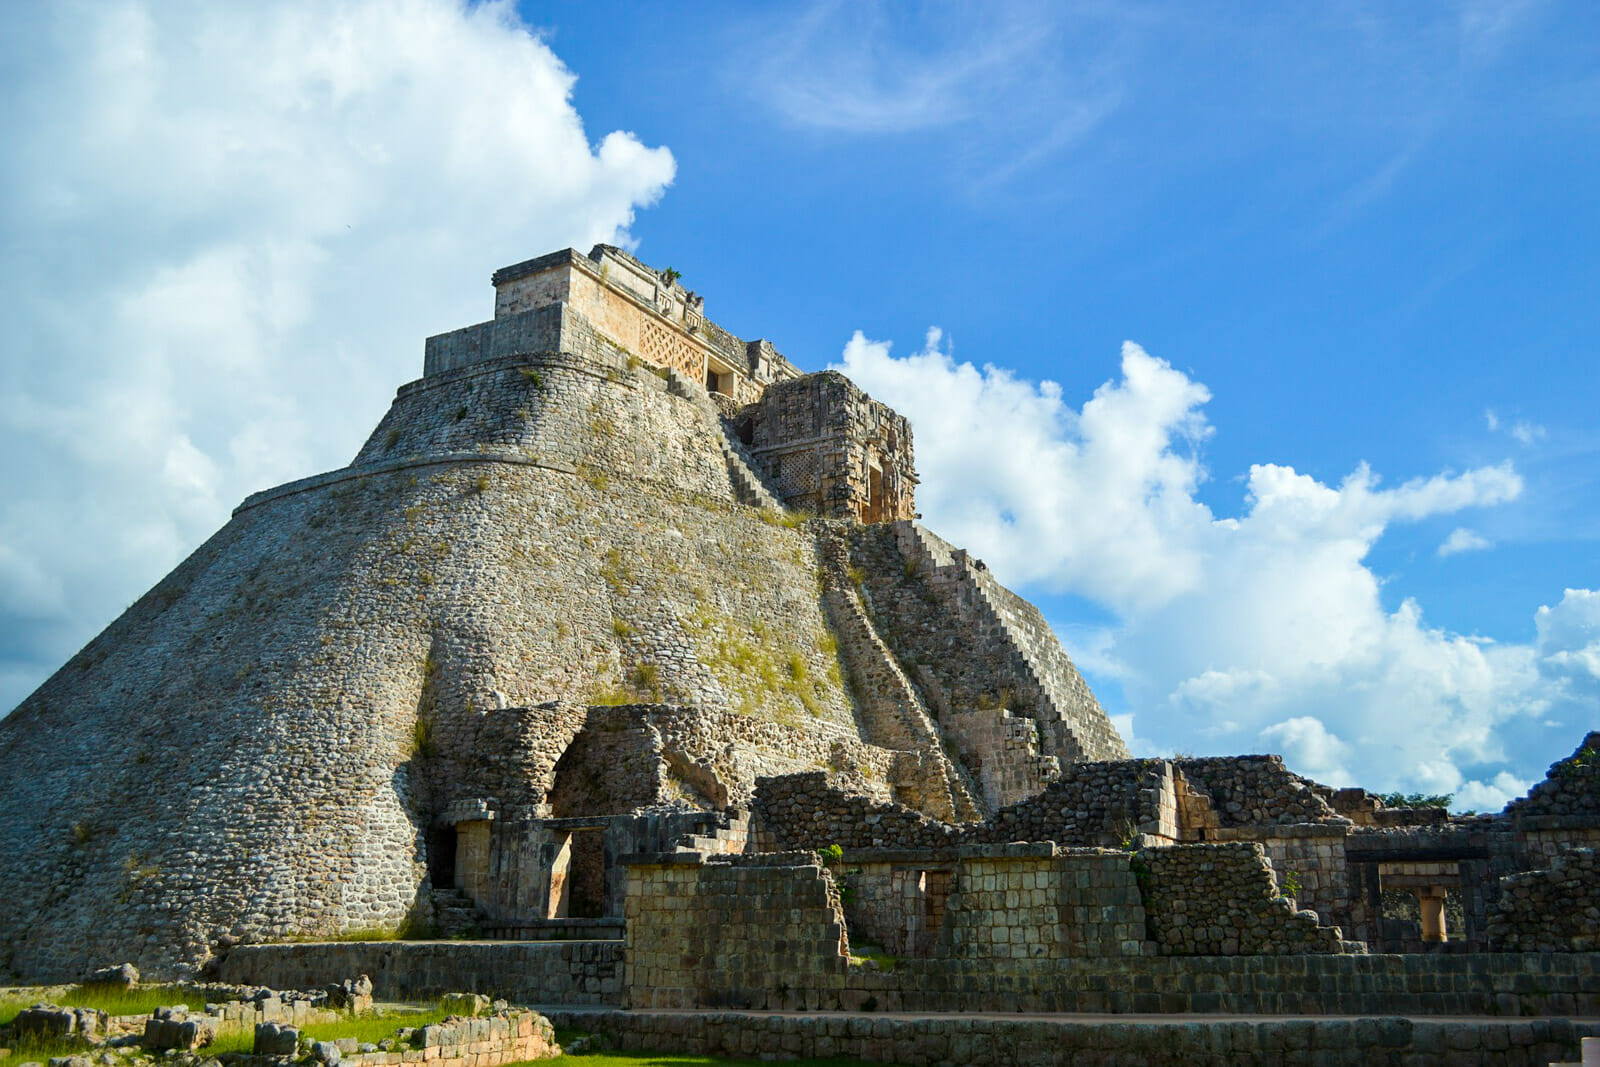 The Uxmal Pyramid of Wonders